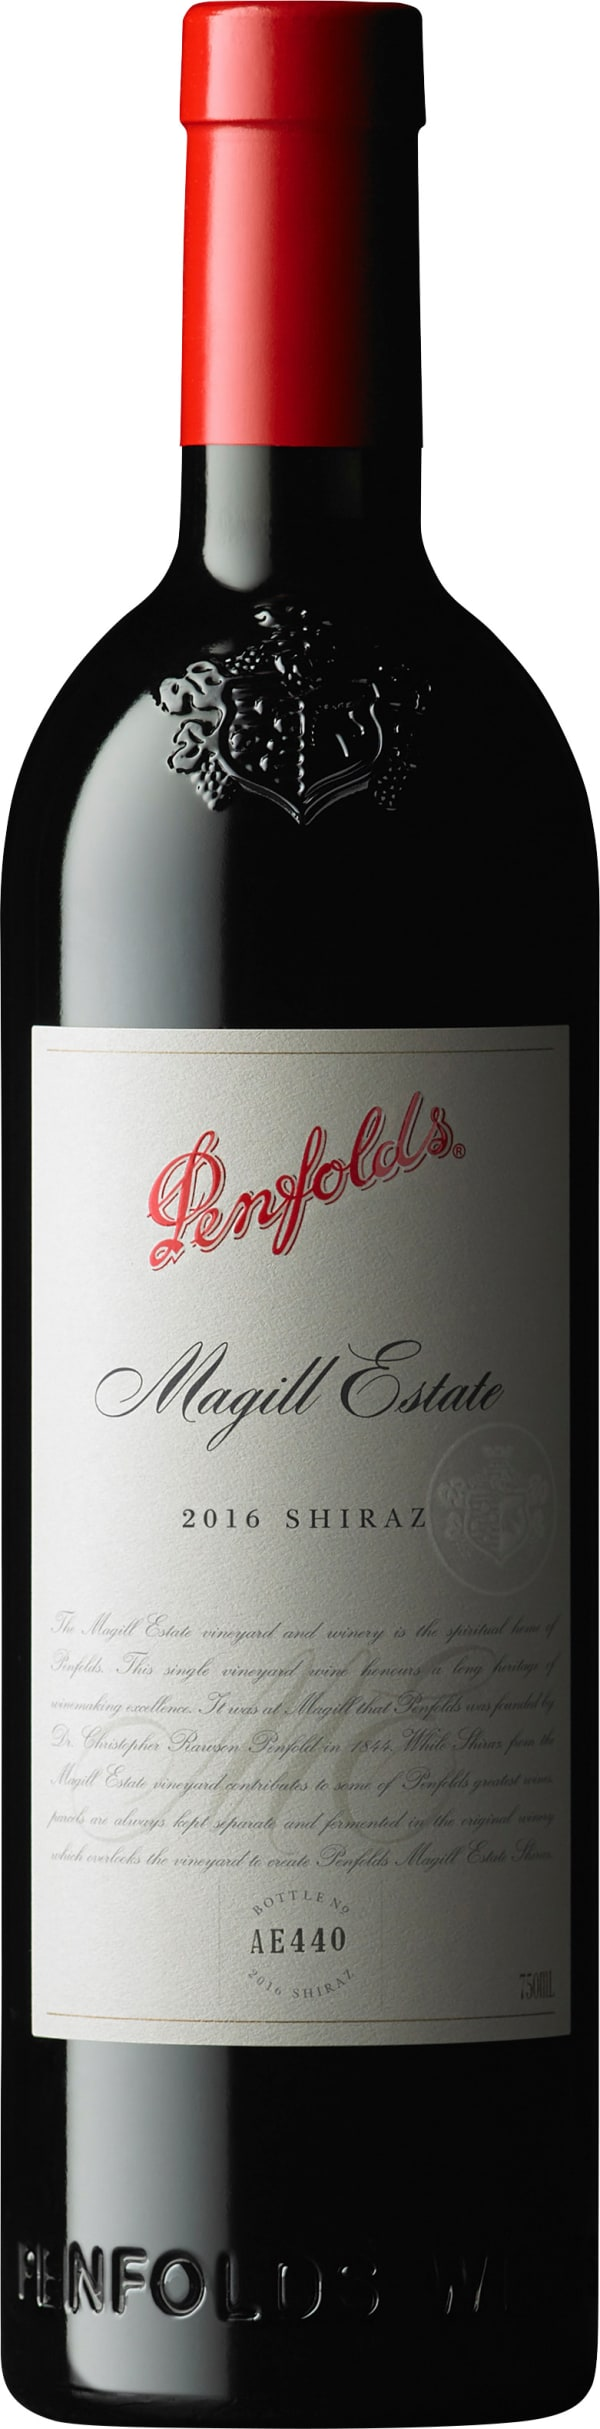 Penfolds Magil Estate Shiraz 2016